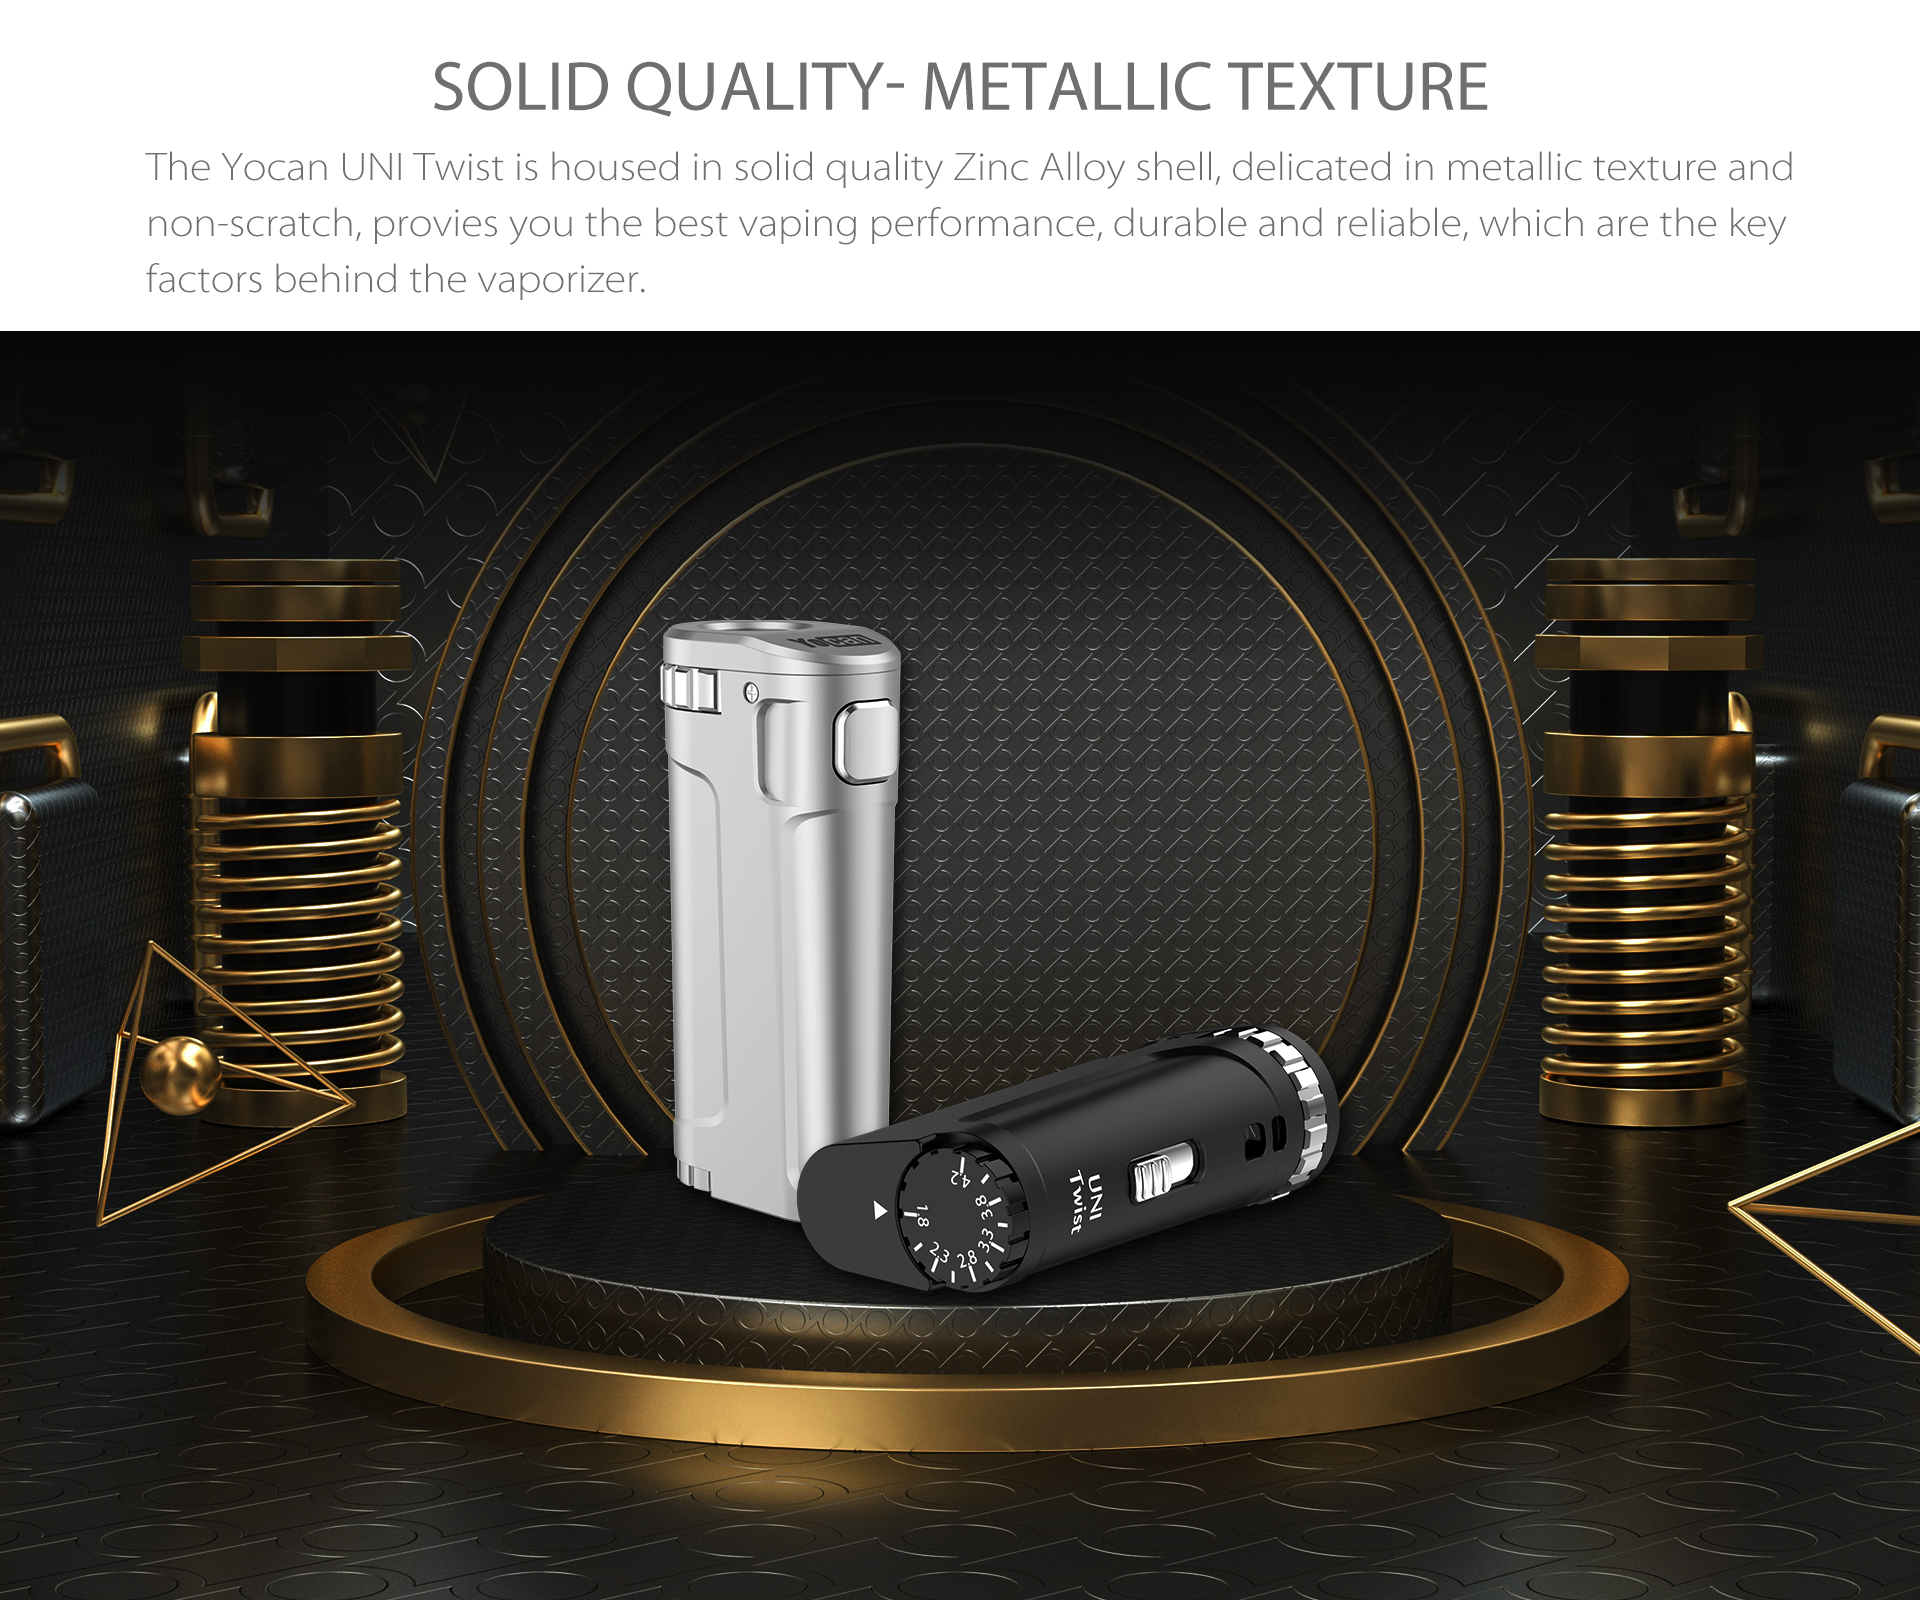 Yocan UNI Twist Universal Portable Mod is housed in solid quality Zinc Alloy shell